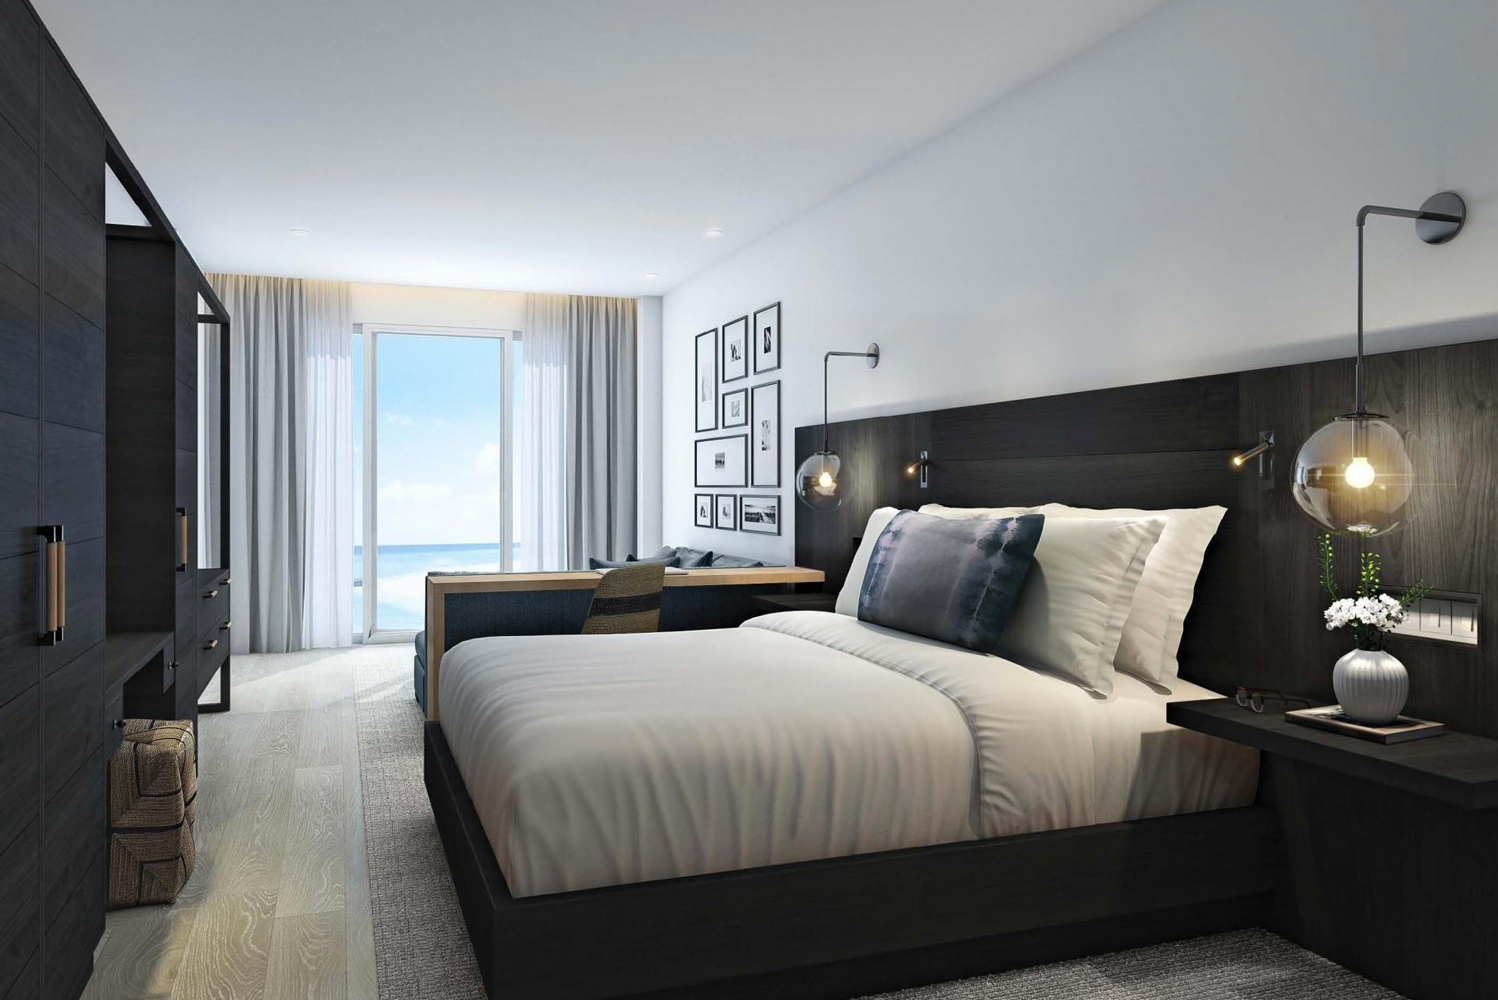 Each room is configured to provide views of the Atlantic Ocean from terraces and through floor-to-ceiling, wall-to wall windows.